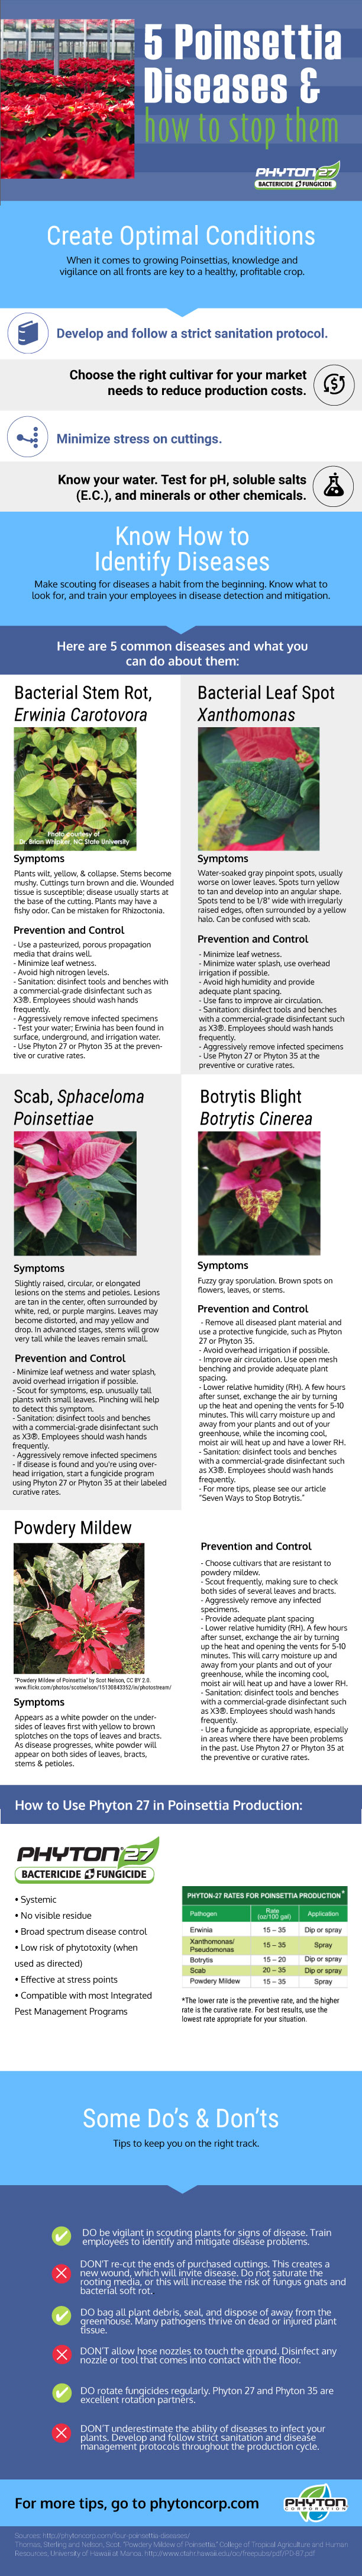 poinsettia-infographic-for-edge